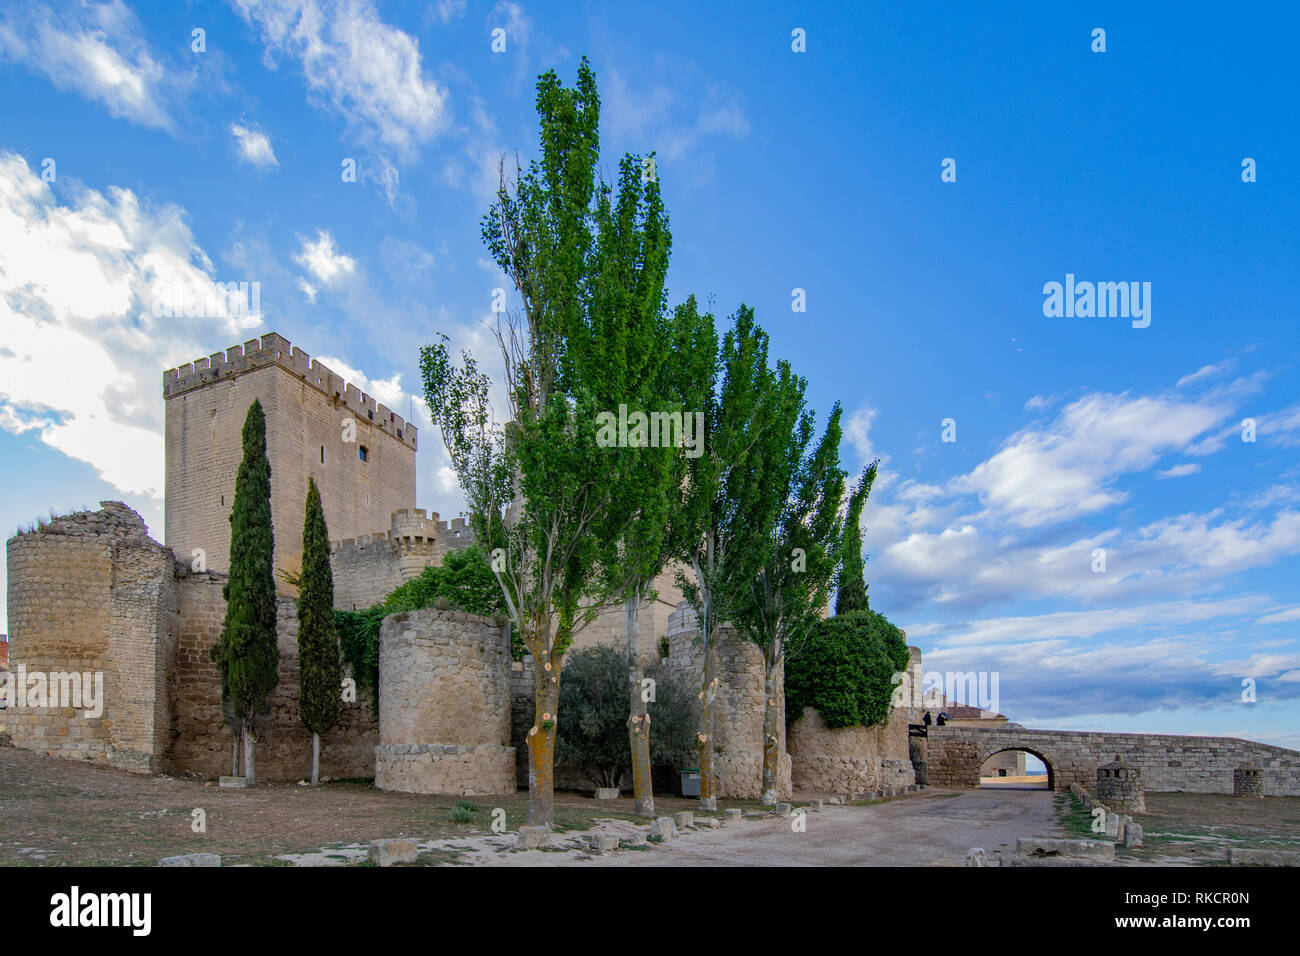 view of medieval castle of Ampudia, of the XV century, in the Province of Palencia - Stock Image